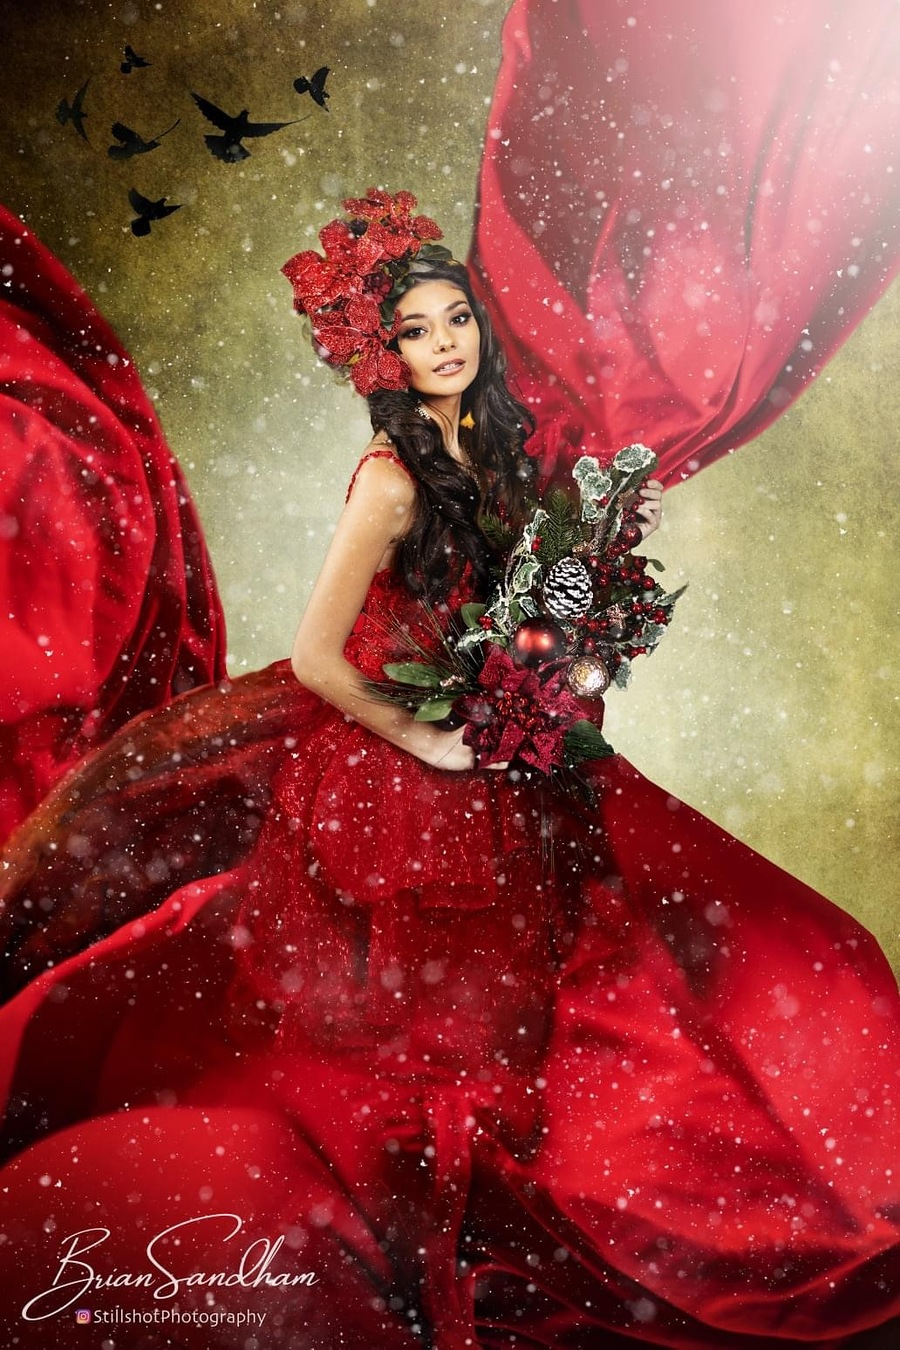 Red in winter / Photography by Vines Art House, Model Elle B1329, Post processing by Vines Art House, Taken at Vines Art House / Uploaded 11th January 2021 @ 06:37 AM